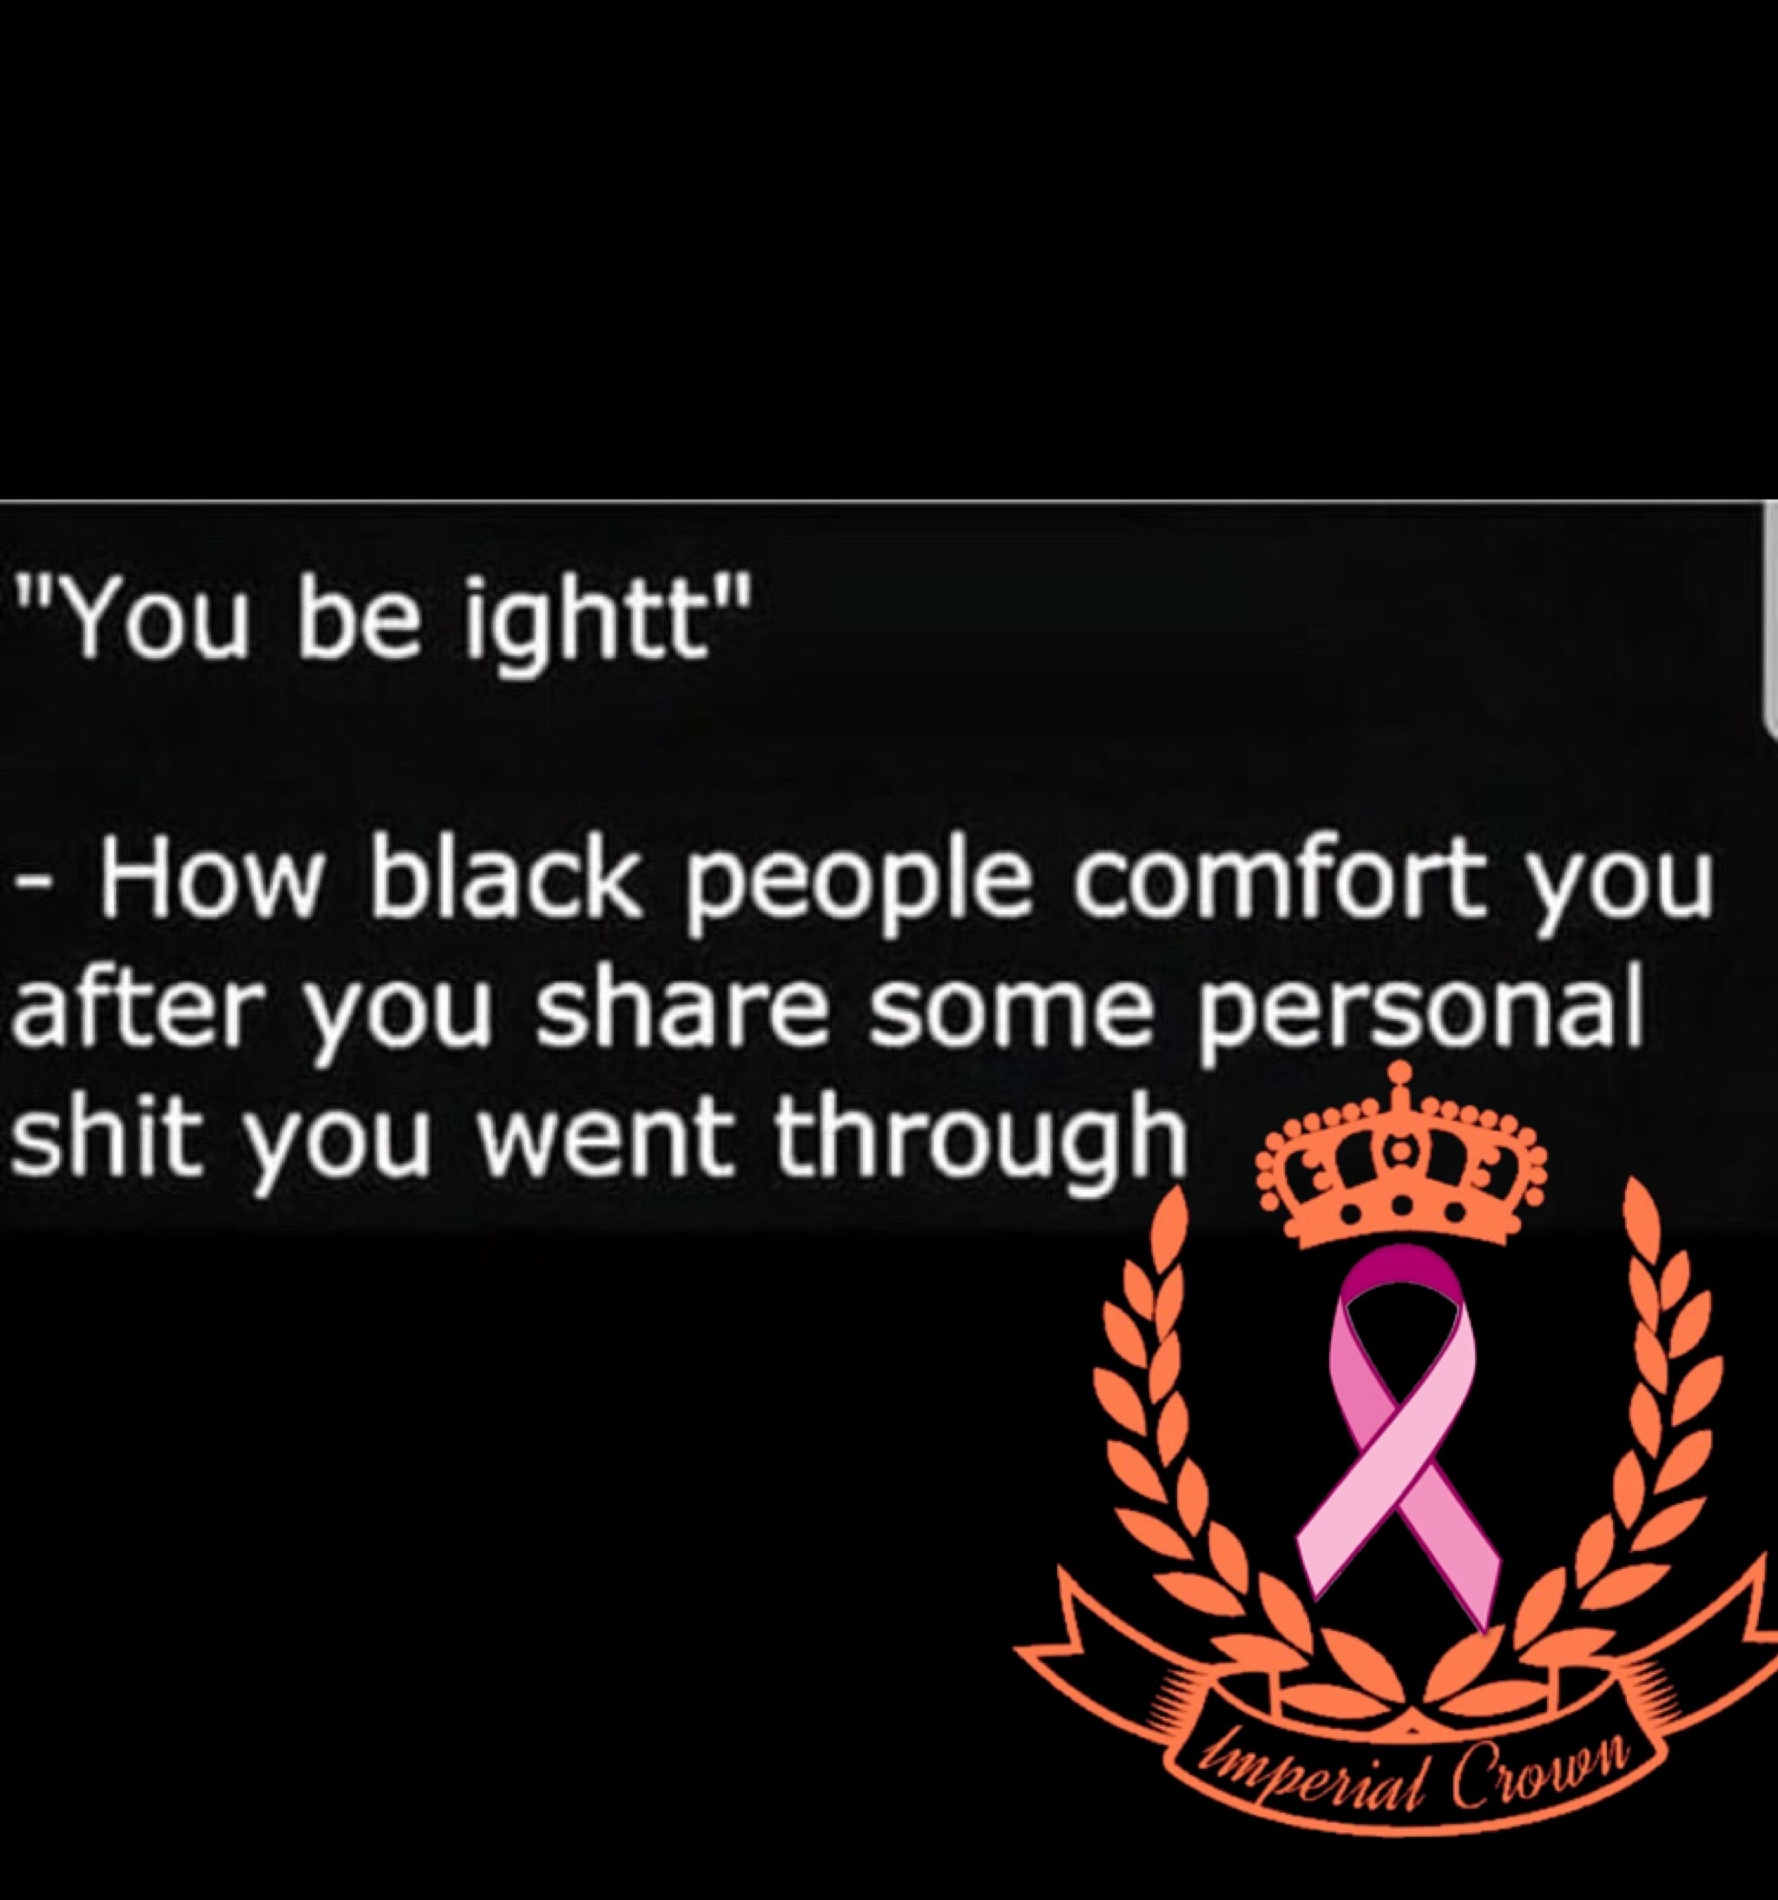 You be IGHT how black people comfort you after you share some personal shit you went through